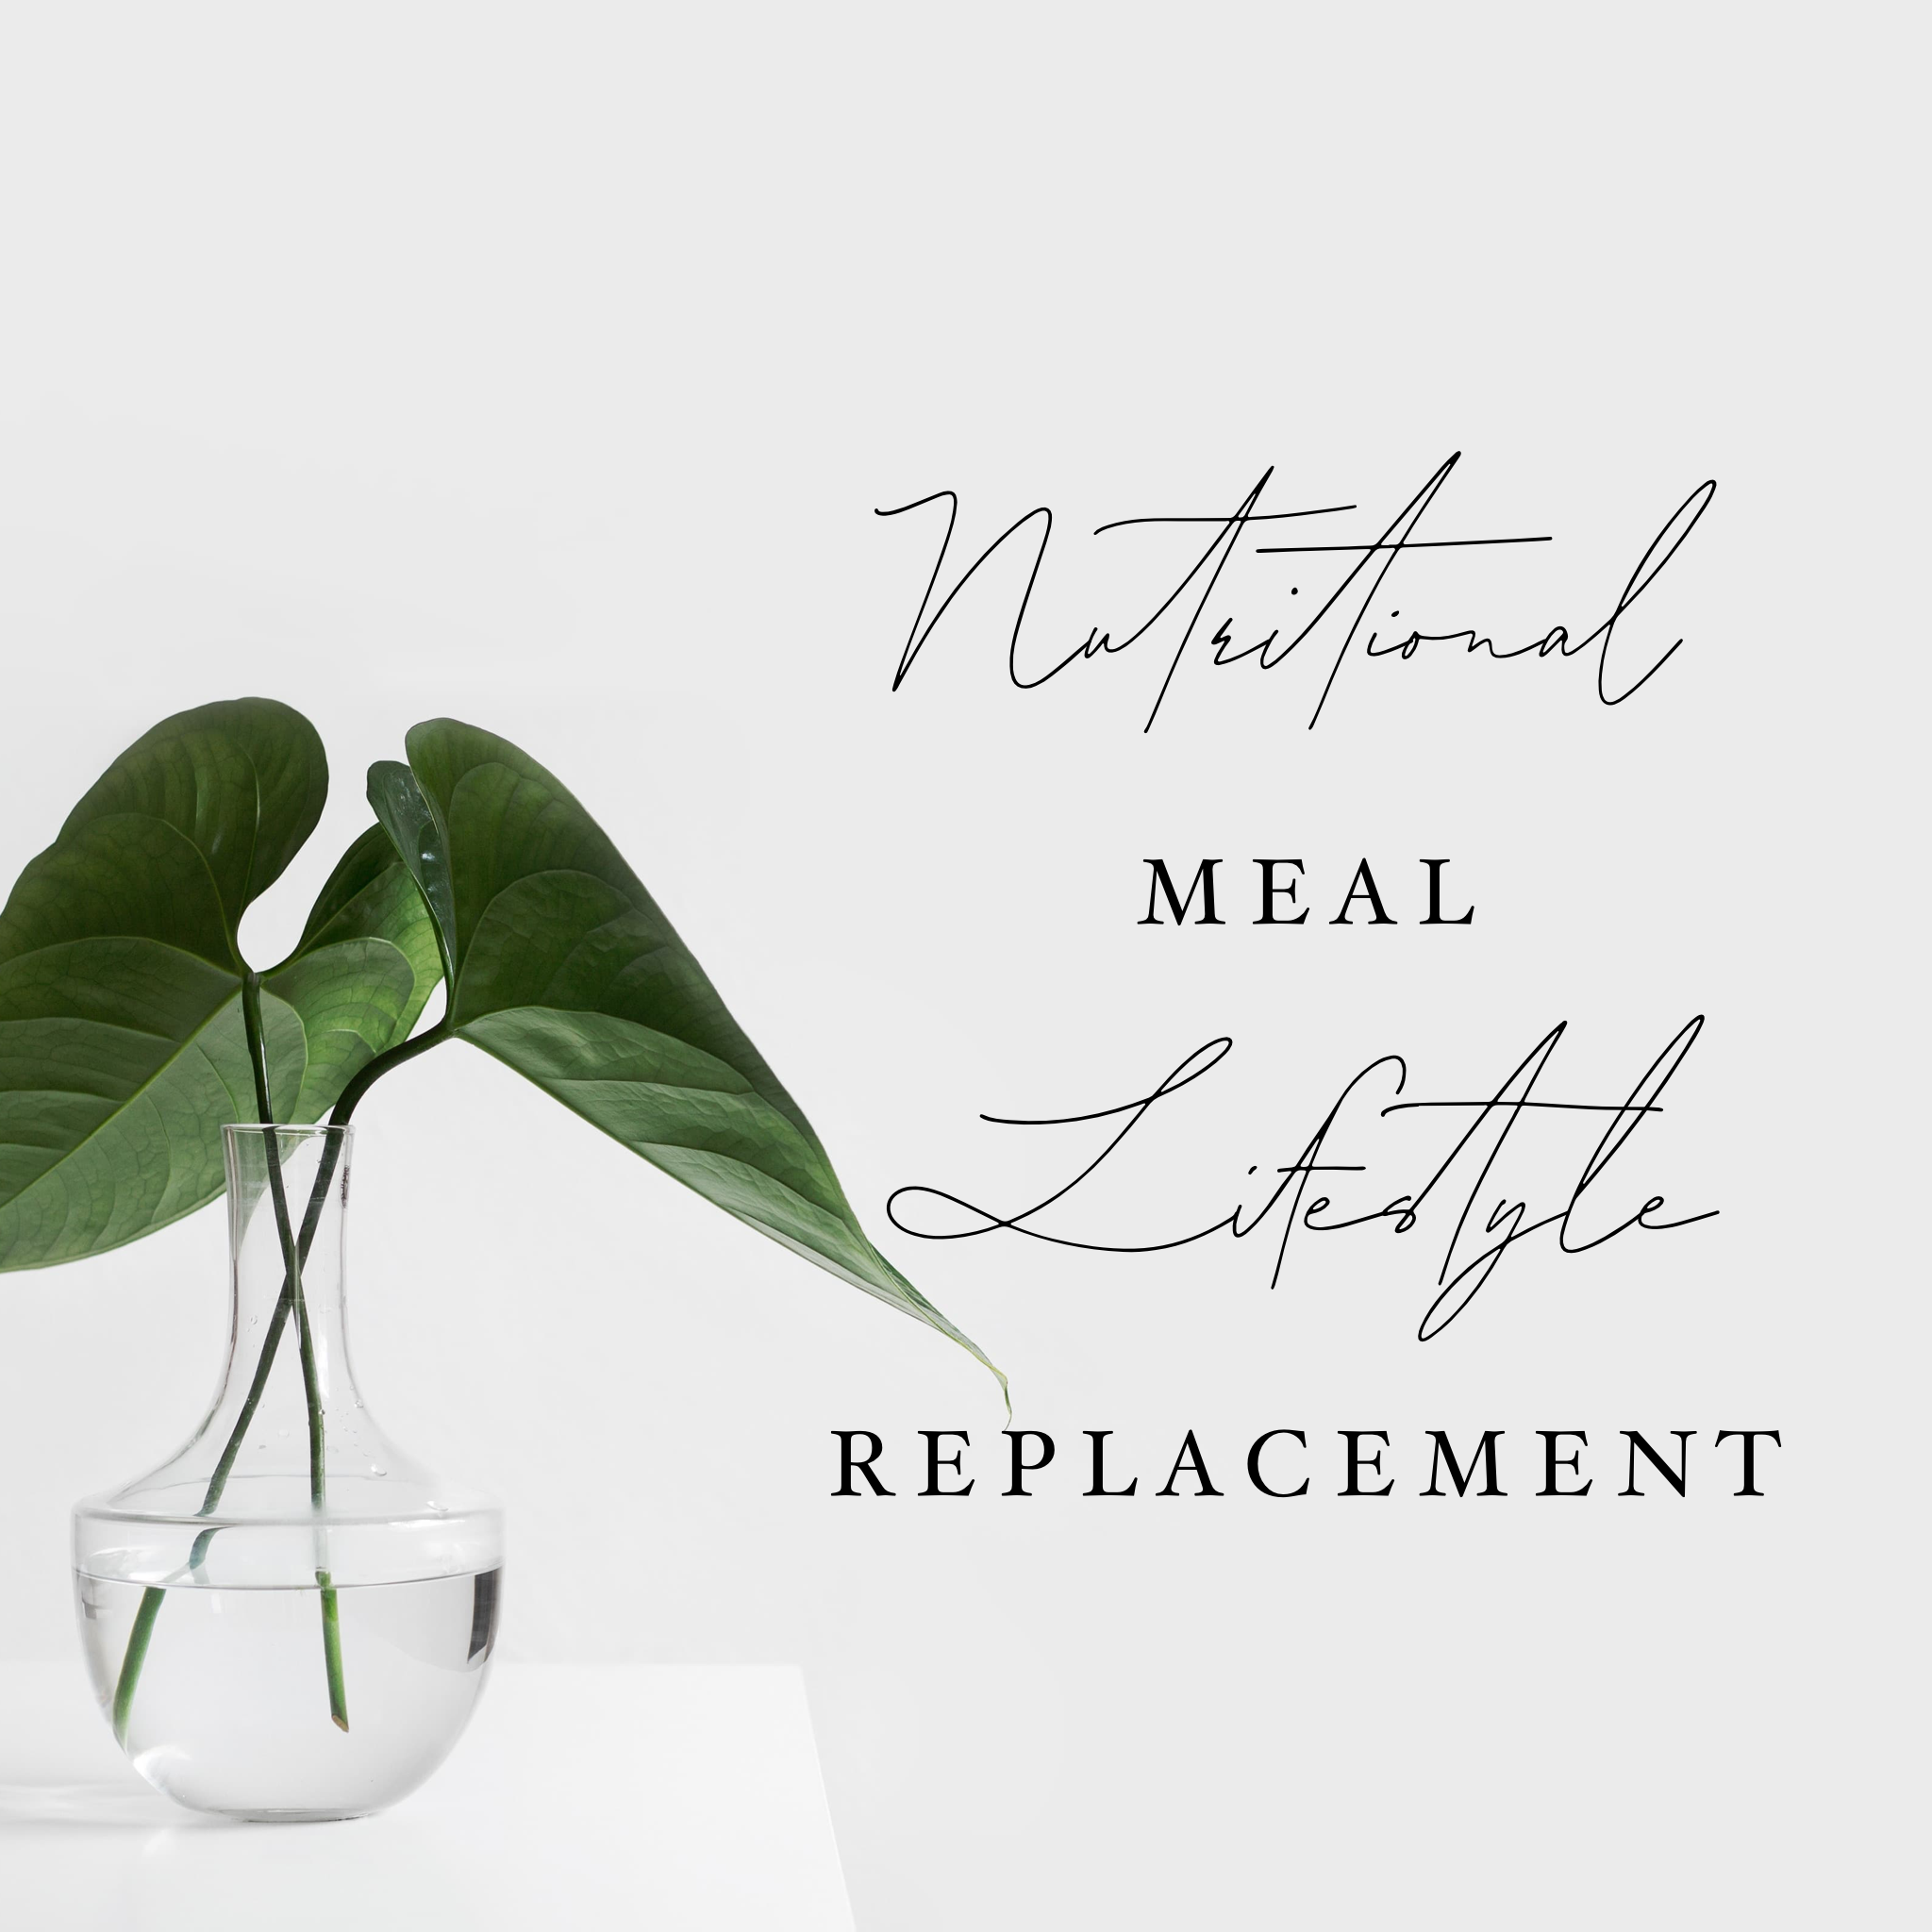 Nutritional Meal + LifeStyle Replacement Artwork.PNG